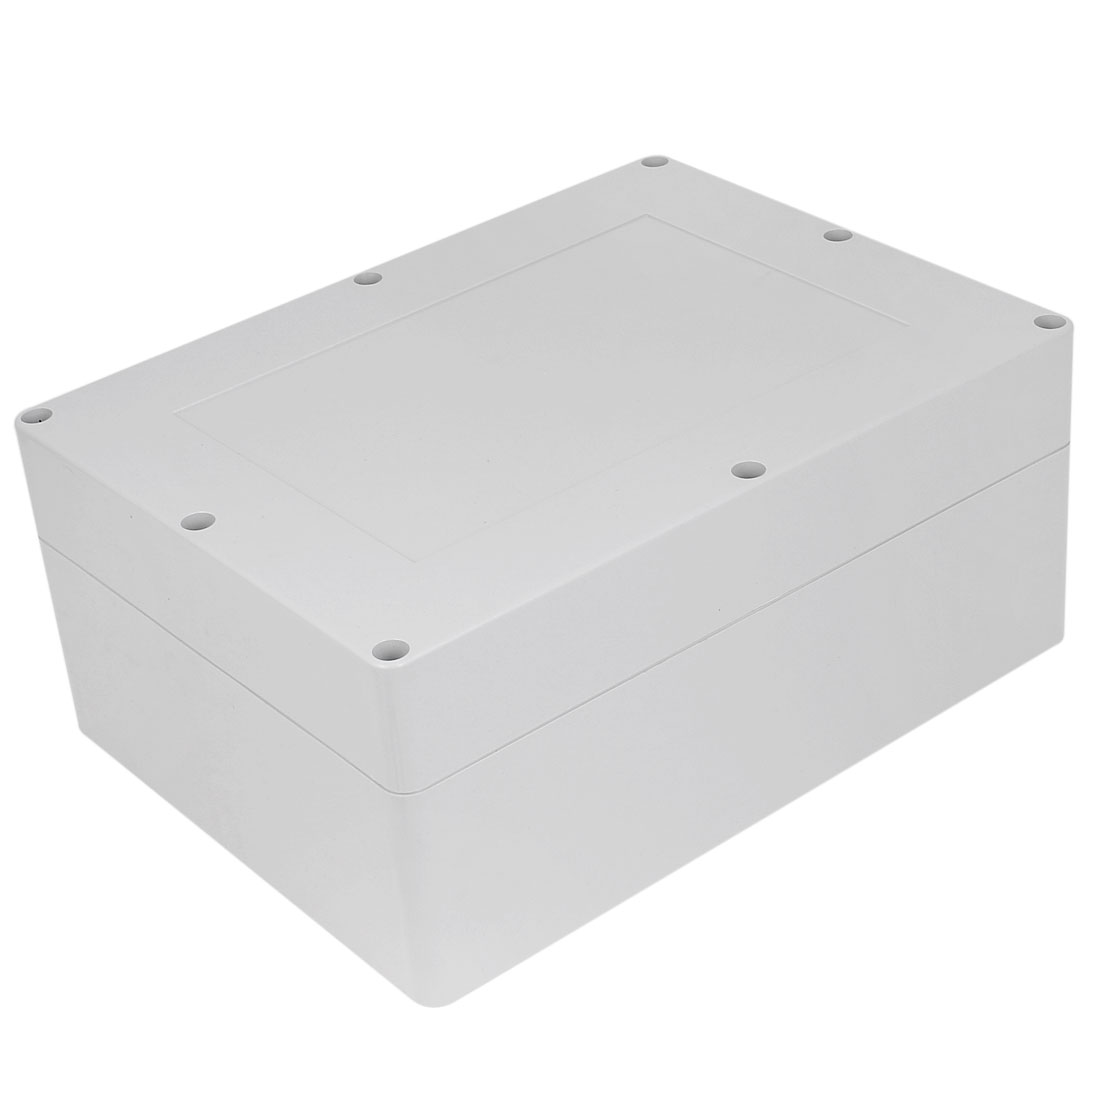 320mm x 240mm x 140mm Dustproof IP65 Sealed DIY Joint Electrical Junction Box